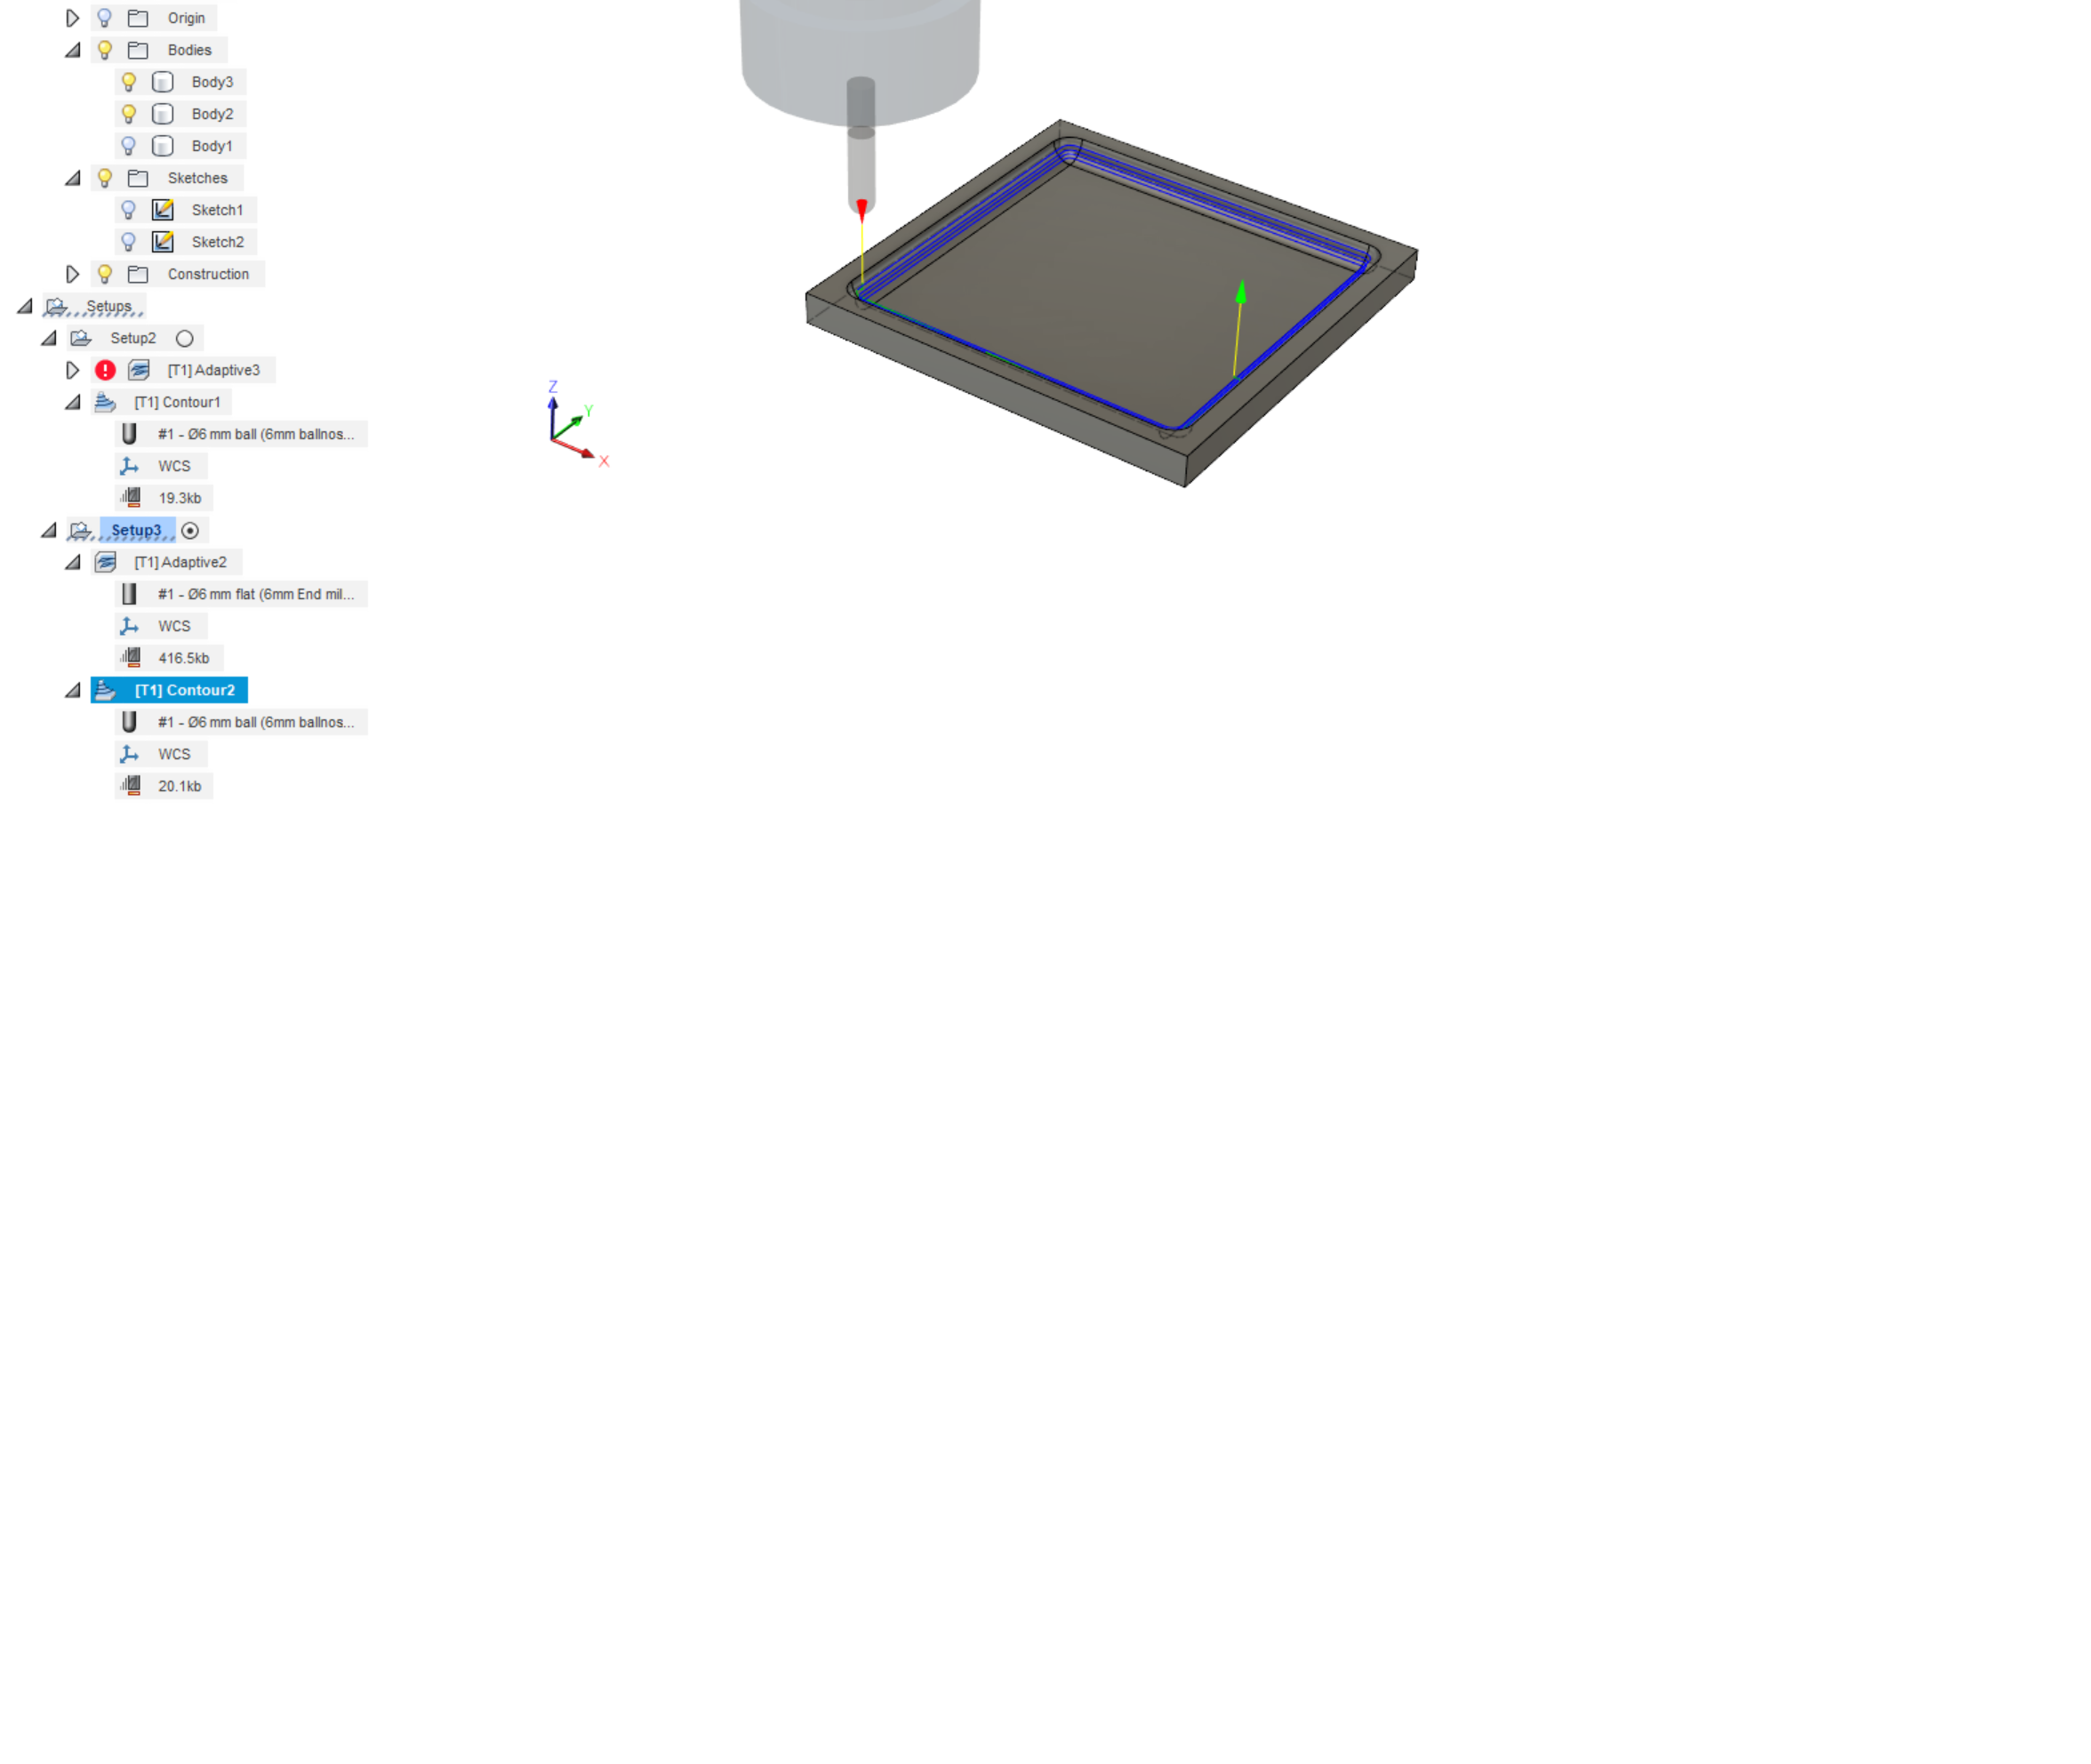 fusion360 to Linuxcnc CAM problem - multiple tools - manual